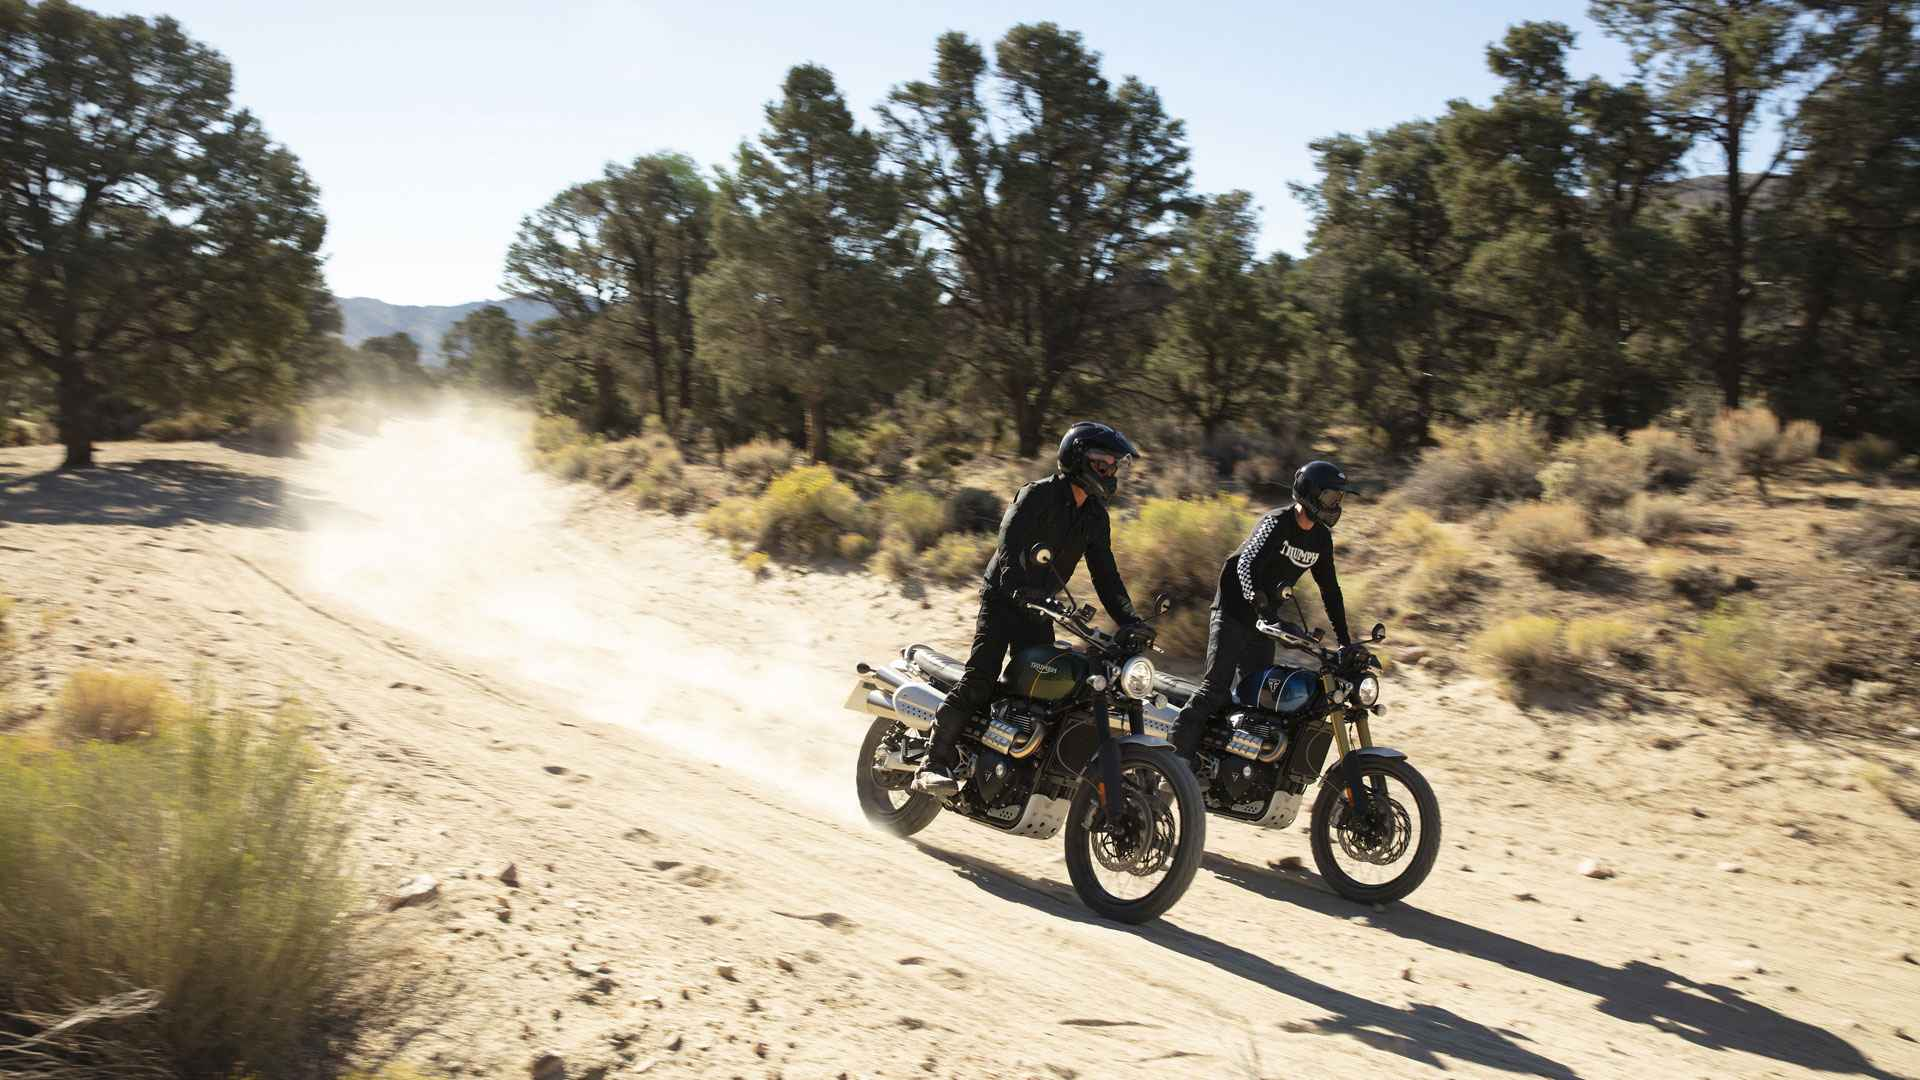 2019 Triumph Scrambler 1200: Everything We Know